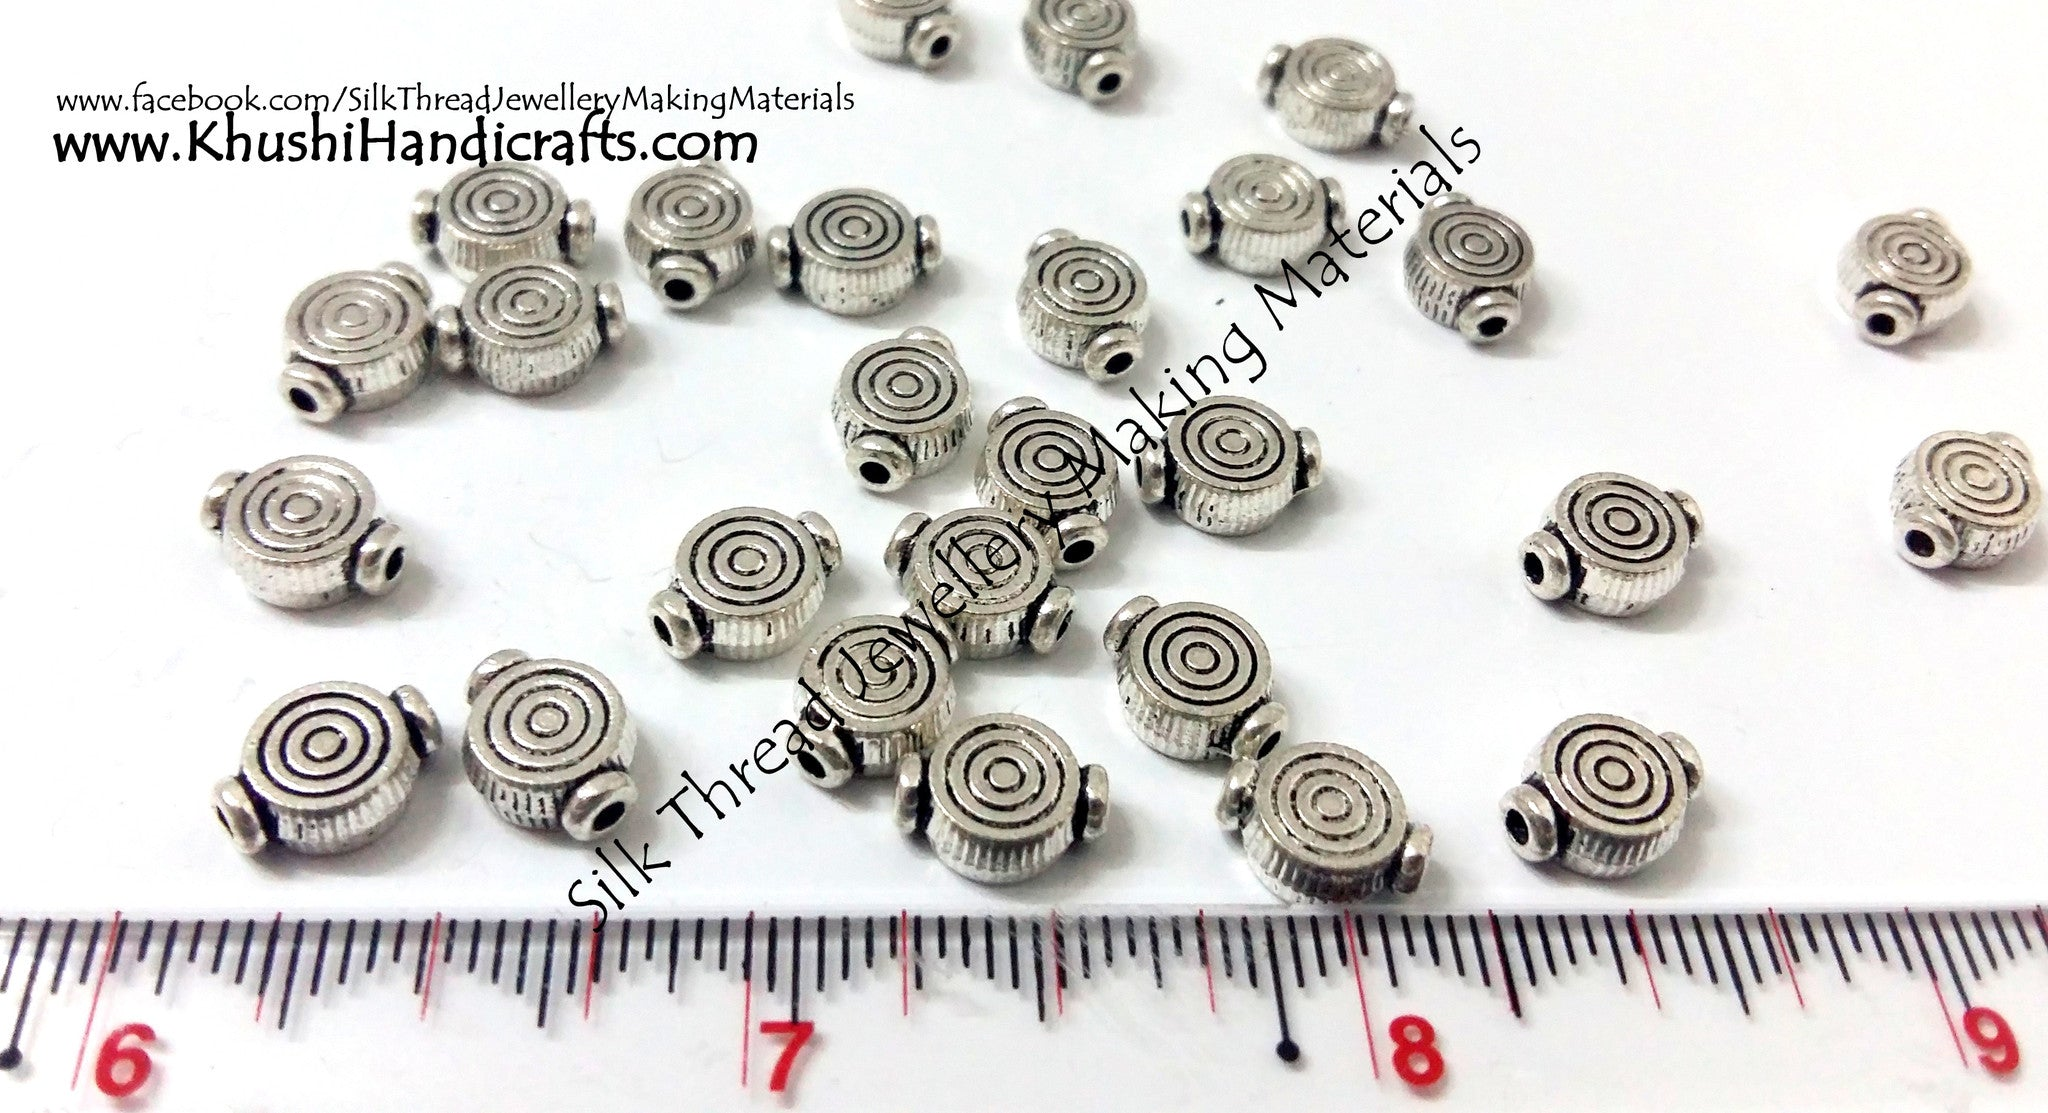 Designer Antique Silver spiral spacer beads,Sold as a pack of 10 beads! - Khushi Handmade Jewellery